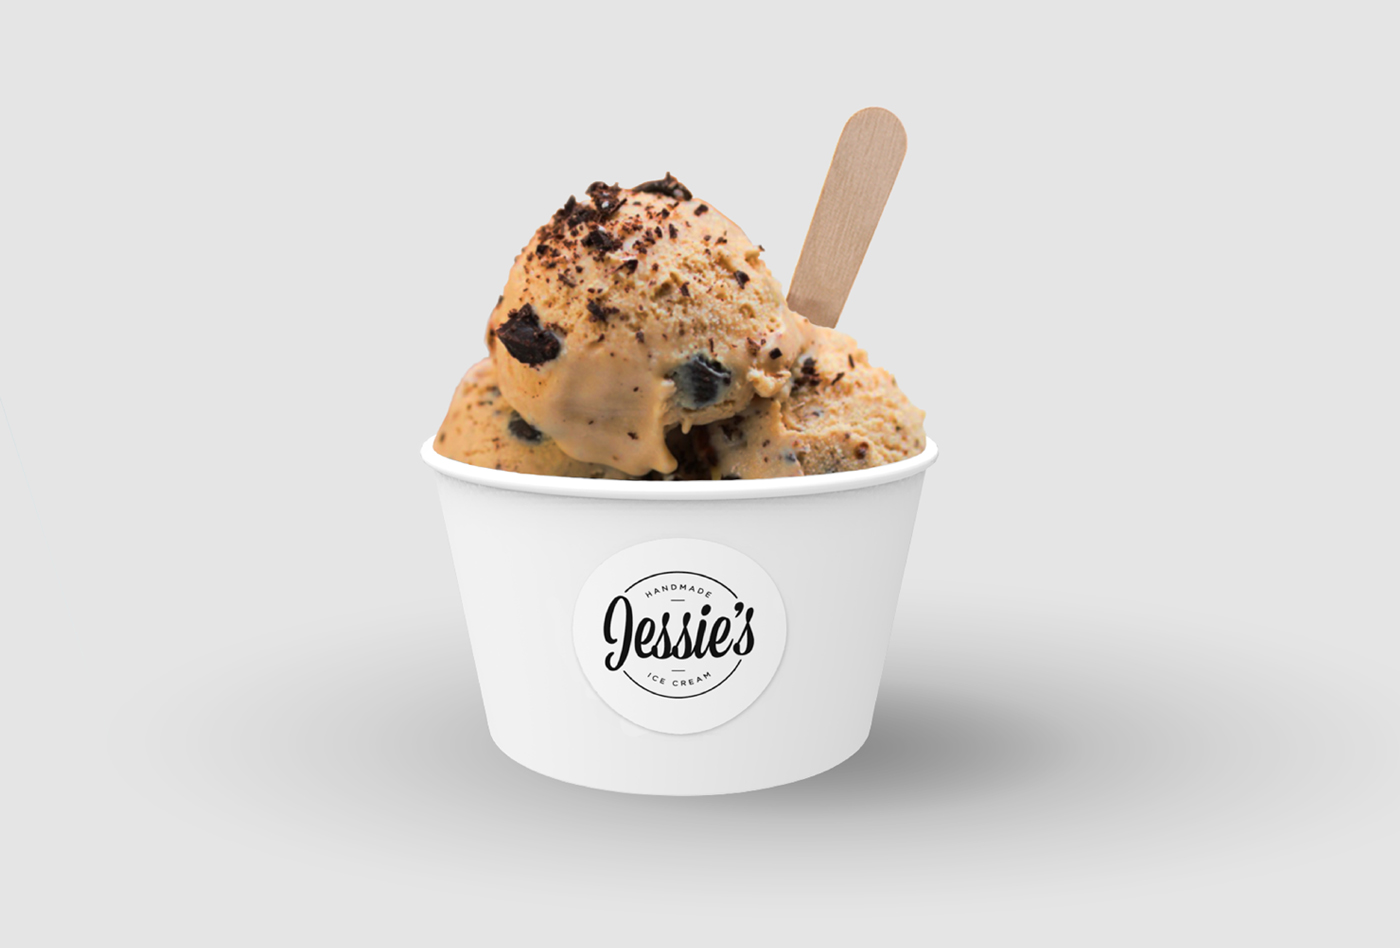 Whaim_studio_Jessies_ice_cream_4